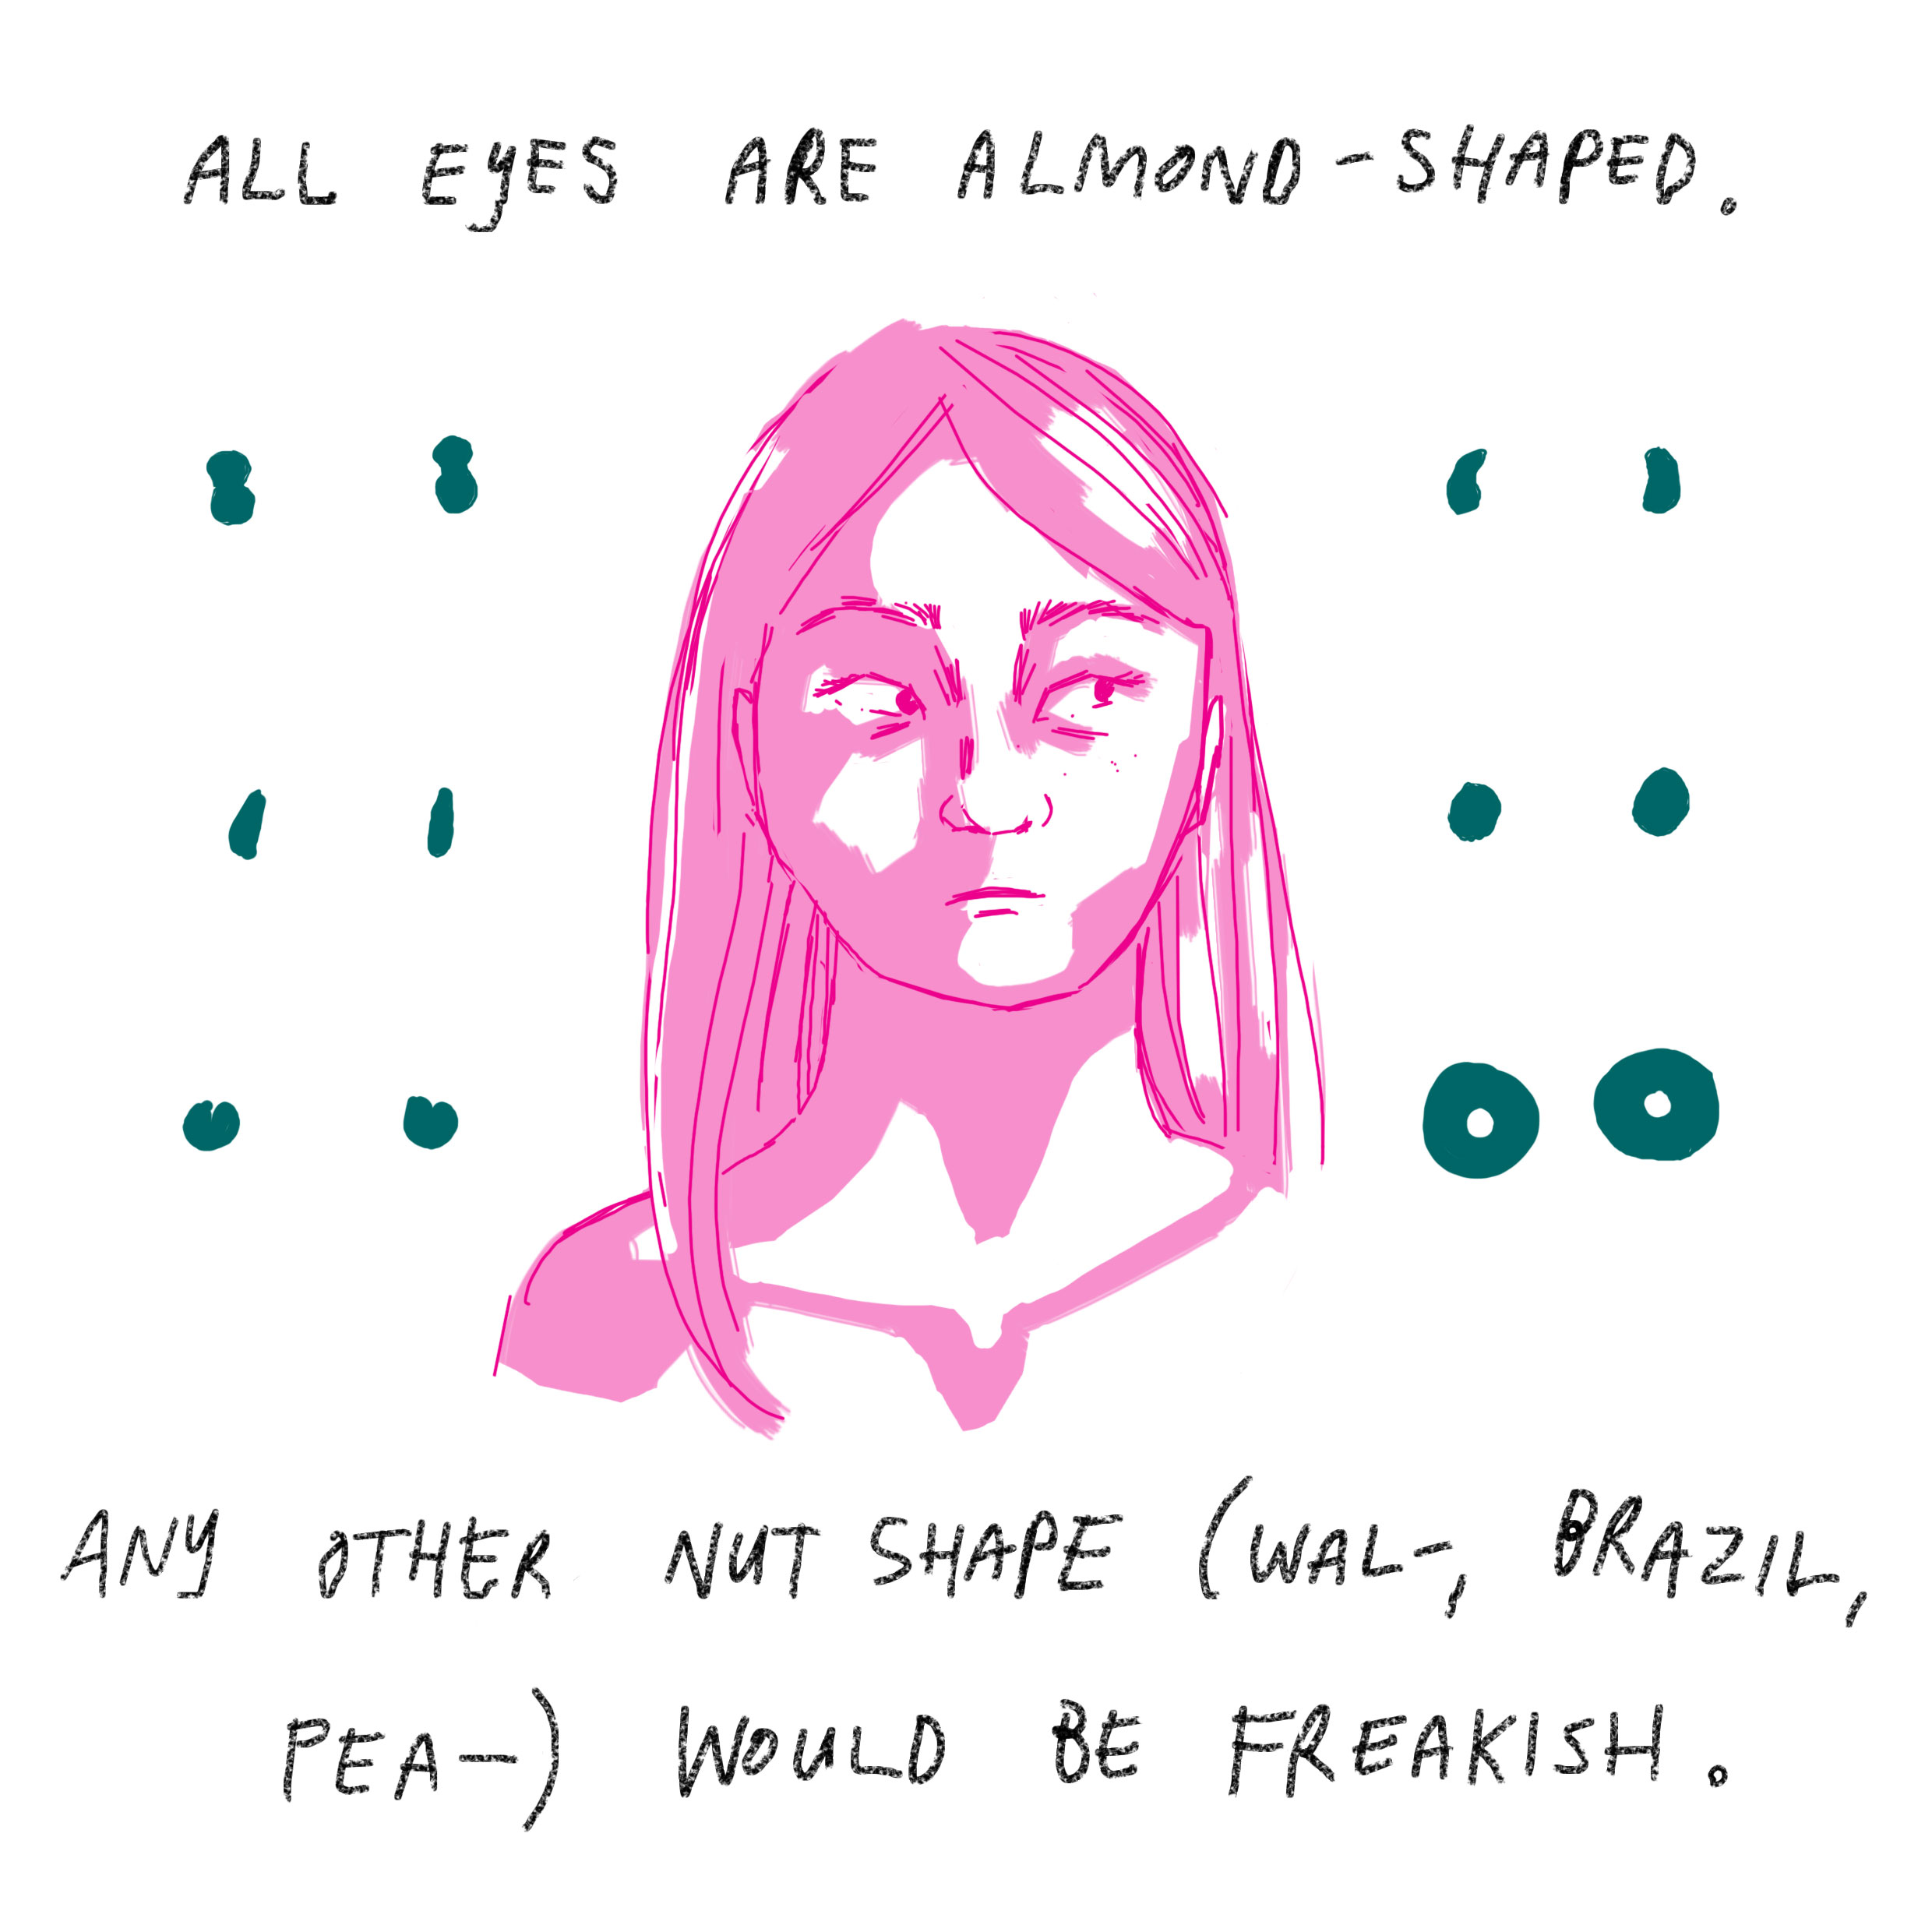 'All eyes are almond-shaped. Any other nut shape (wal-, brazil, pea-) would be freakish.'